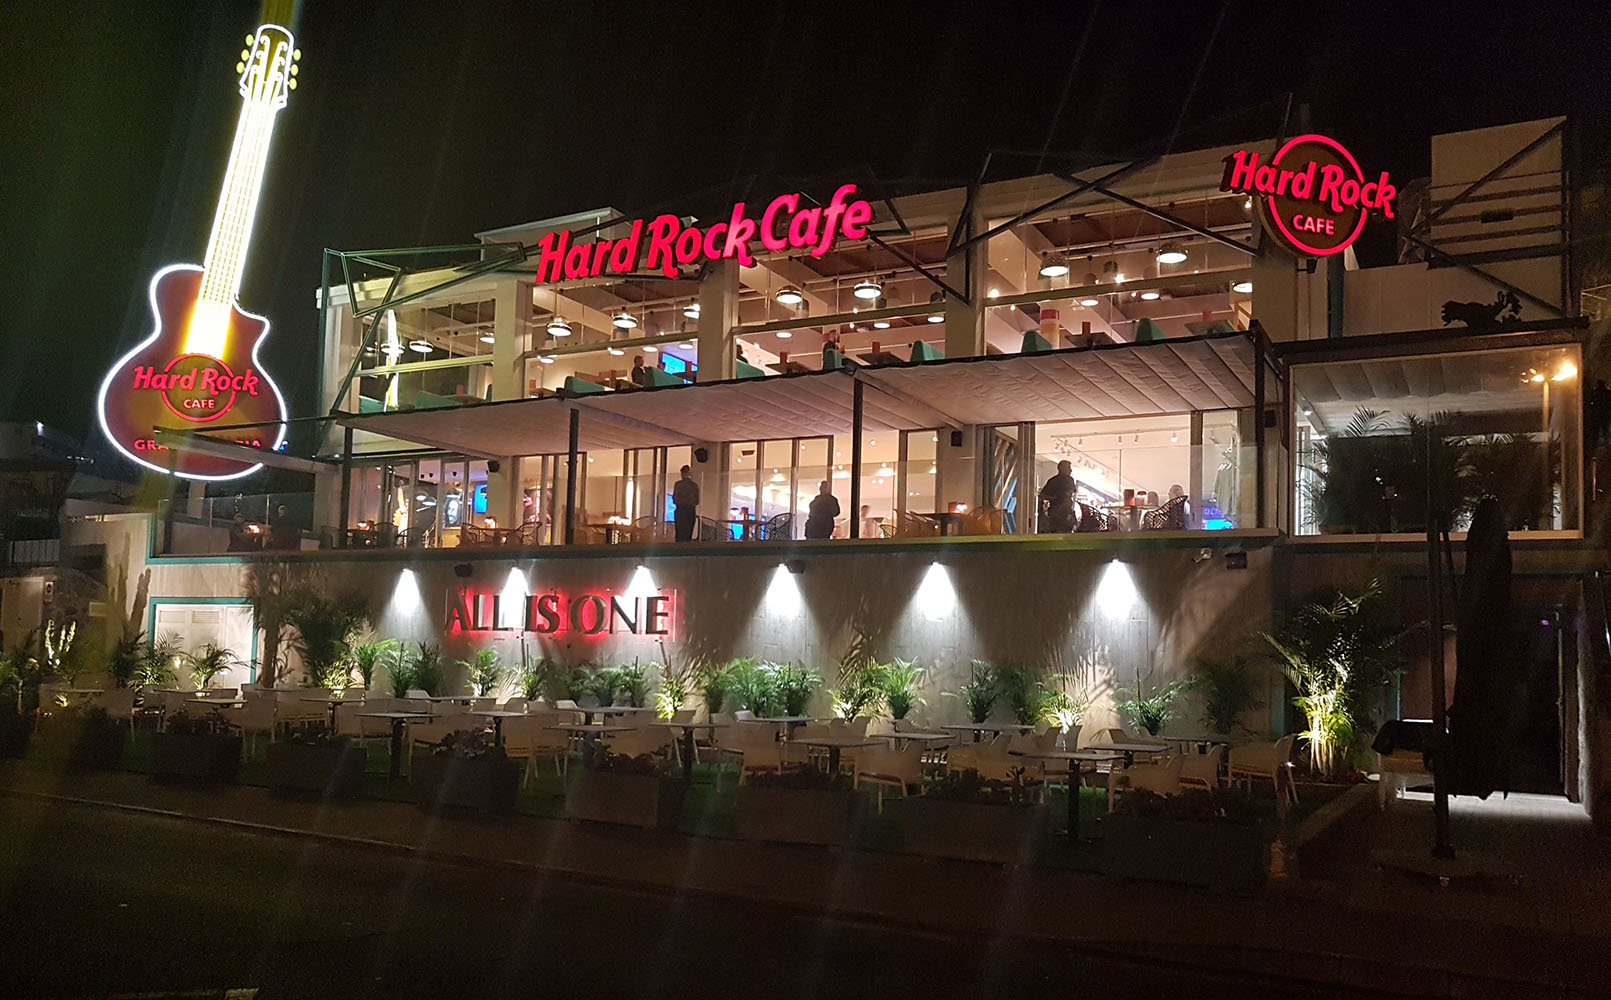 Hard Rock Cafe Gran Canaria Americana Dining In Gran Canaria Spain